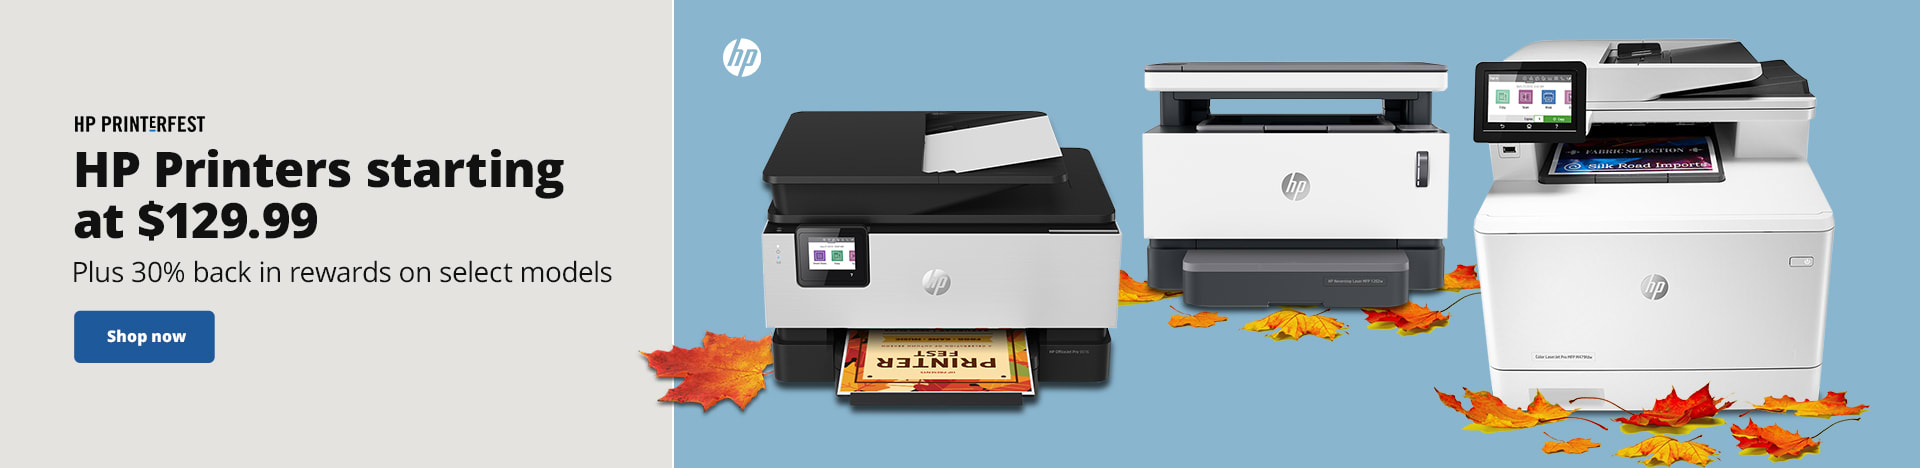 HP Printerfest. HP Printers starting at $129.99. Plus 30% back in rewards on select models